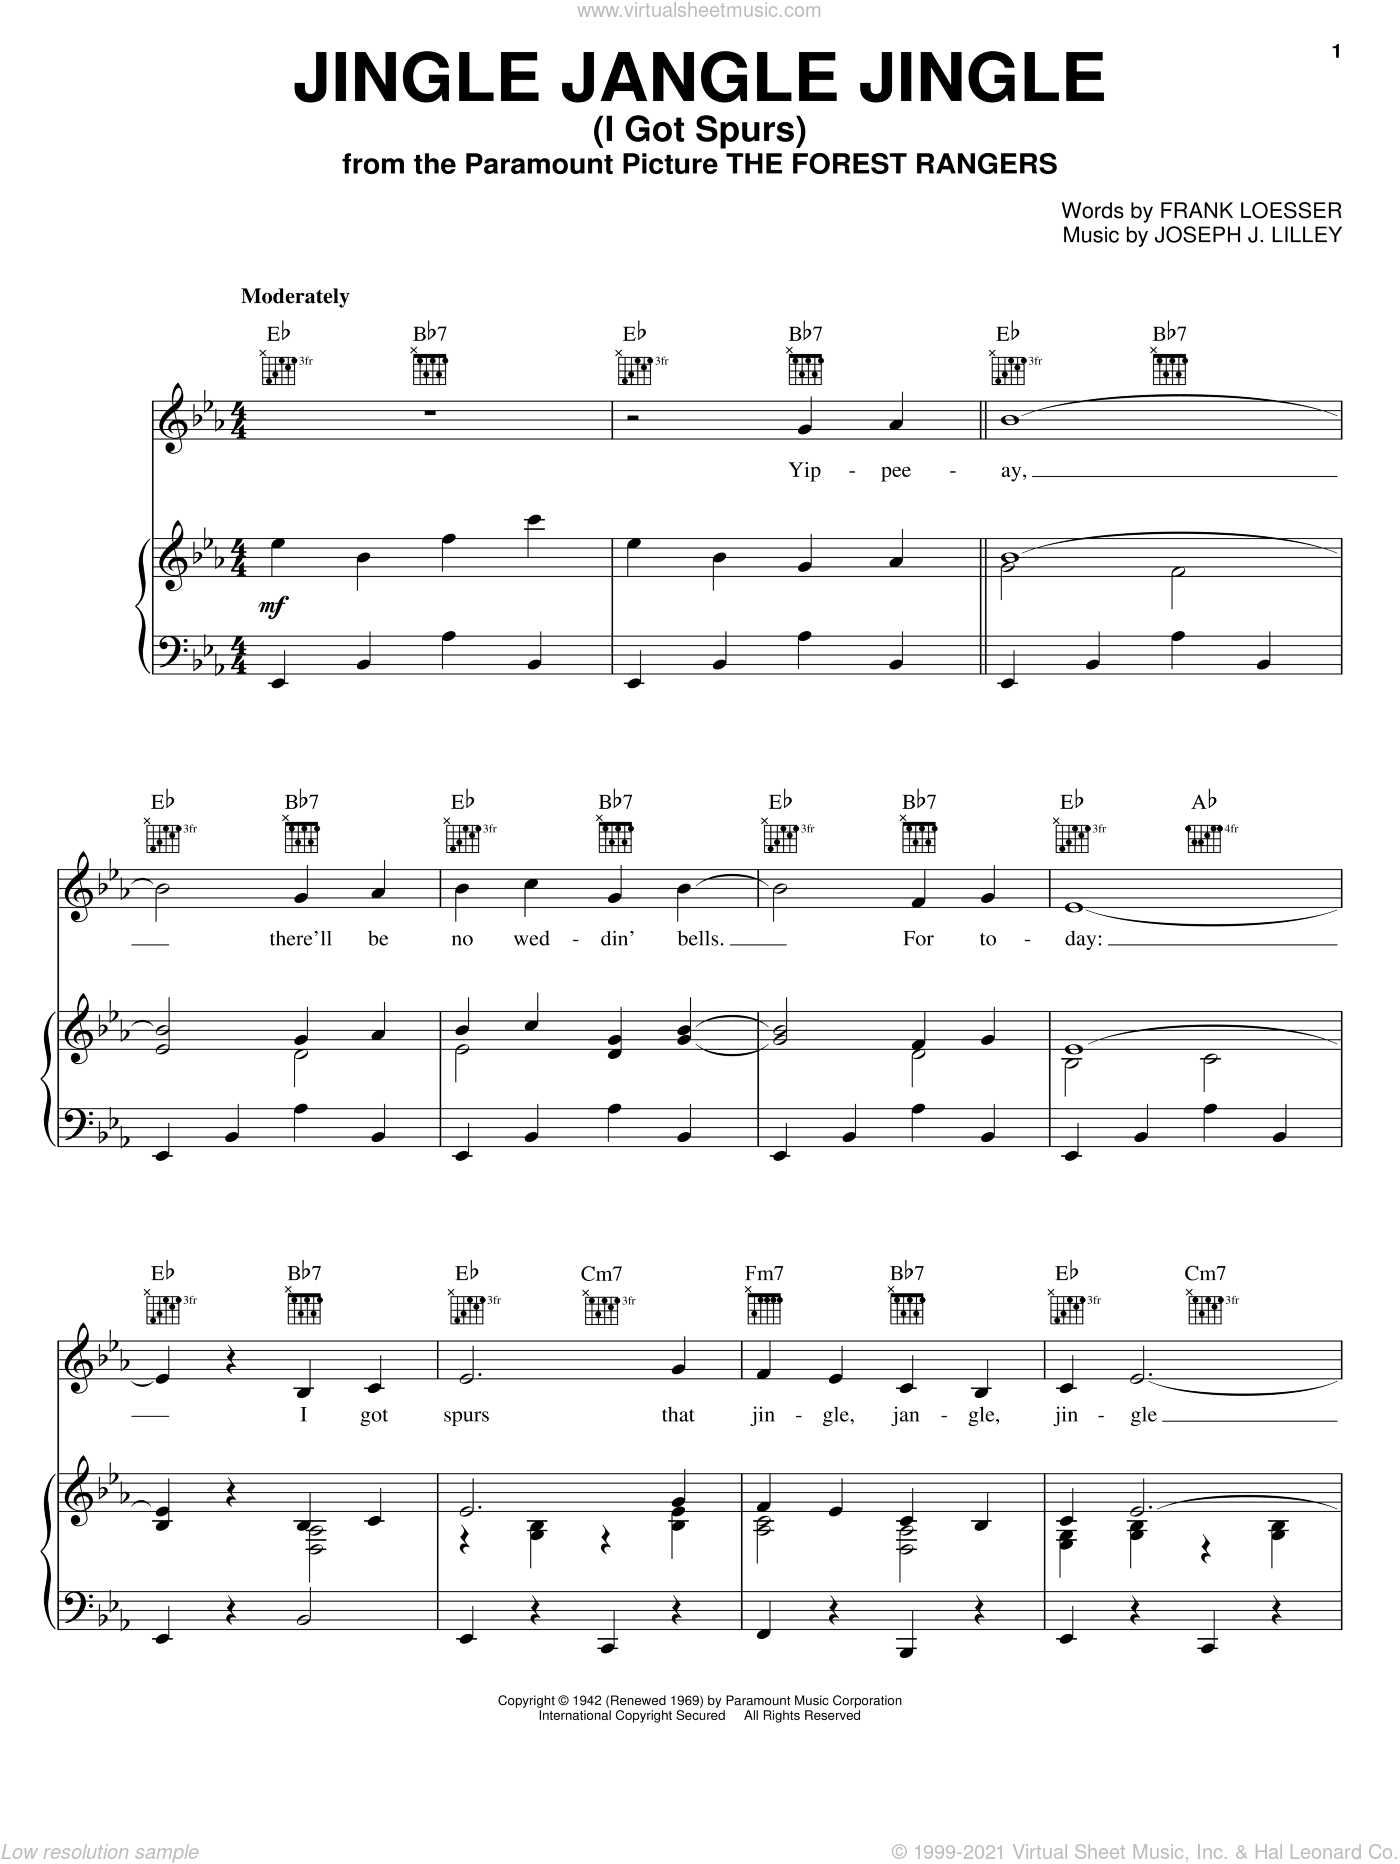 Jingle Jangle Jingle (I Got Spurs) sheet music for voice, piano or guitar by Frank Loesser and Joseph J. Lilley, intermediate